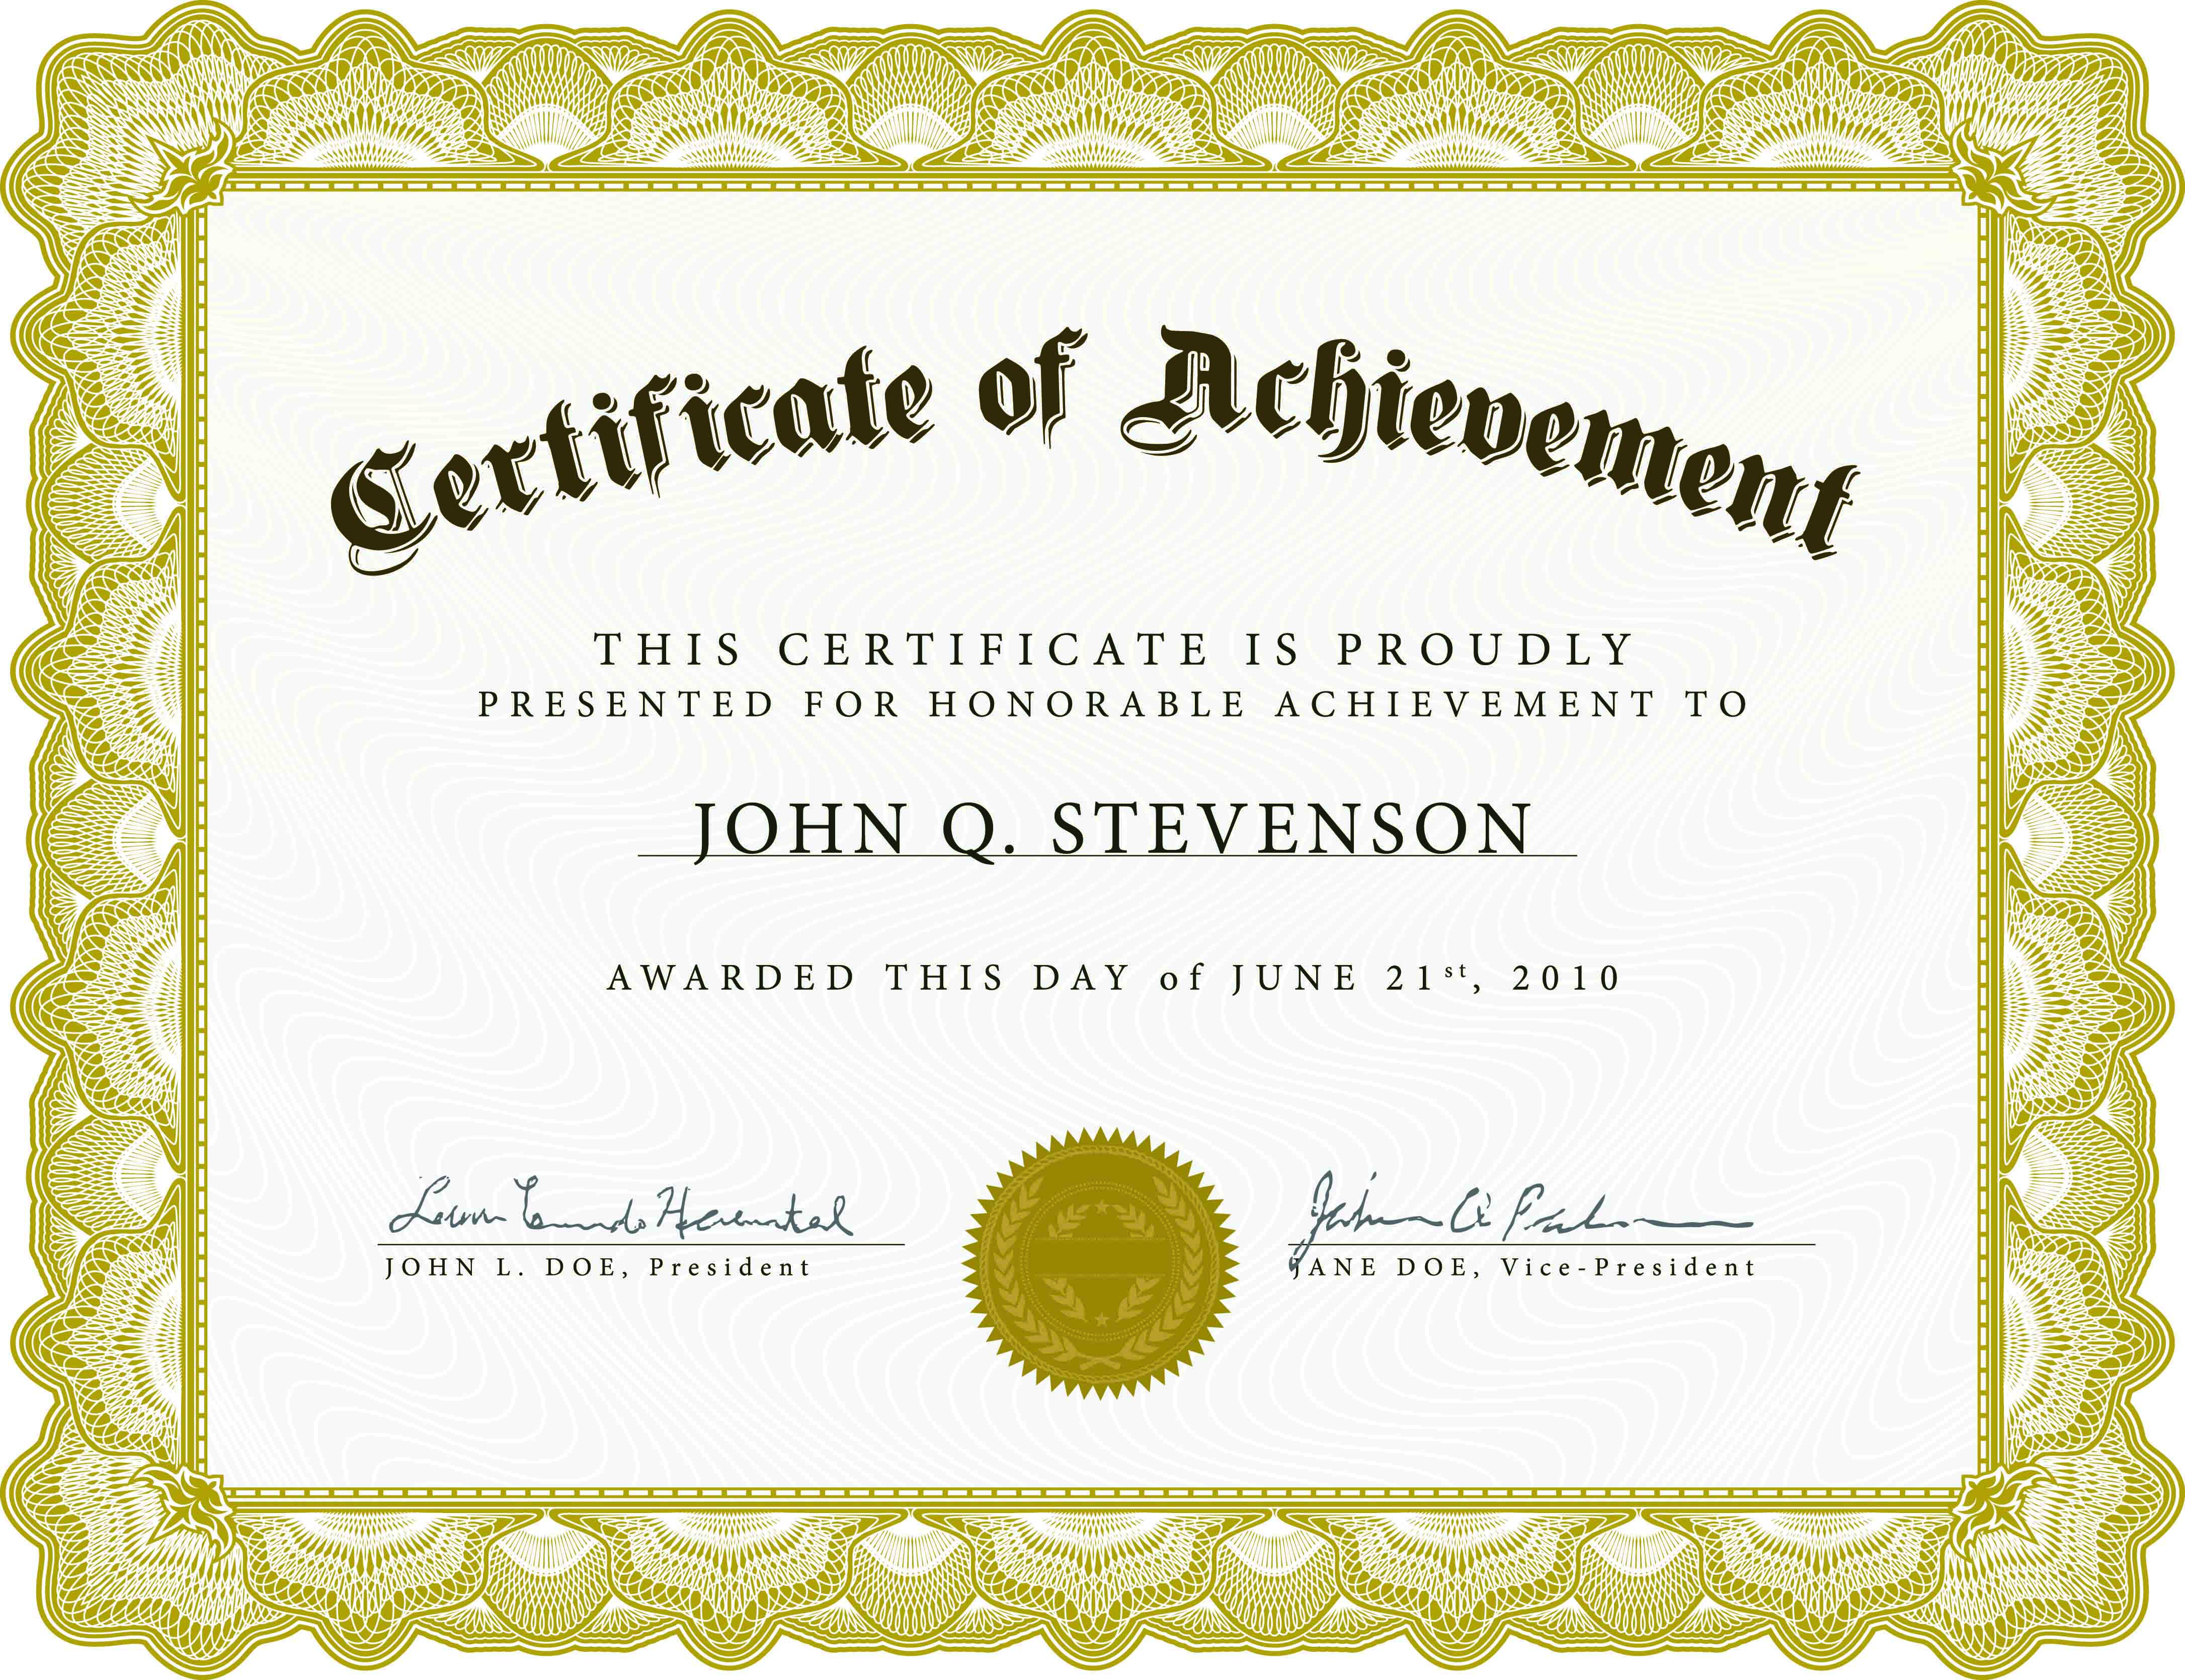 12 Certificate Templates Free Downloads Images - Completion With Certificate Templates For Word Free Downloads